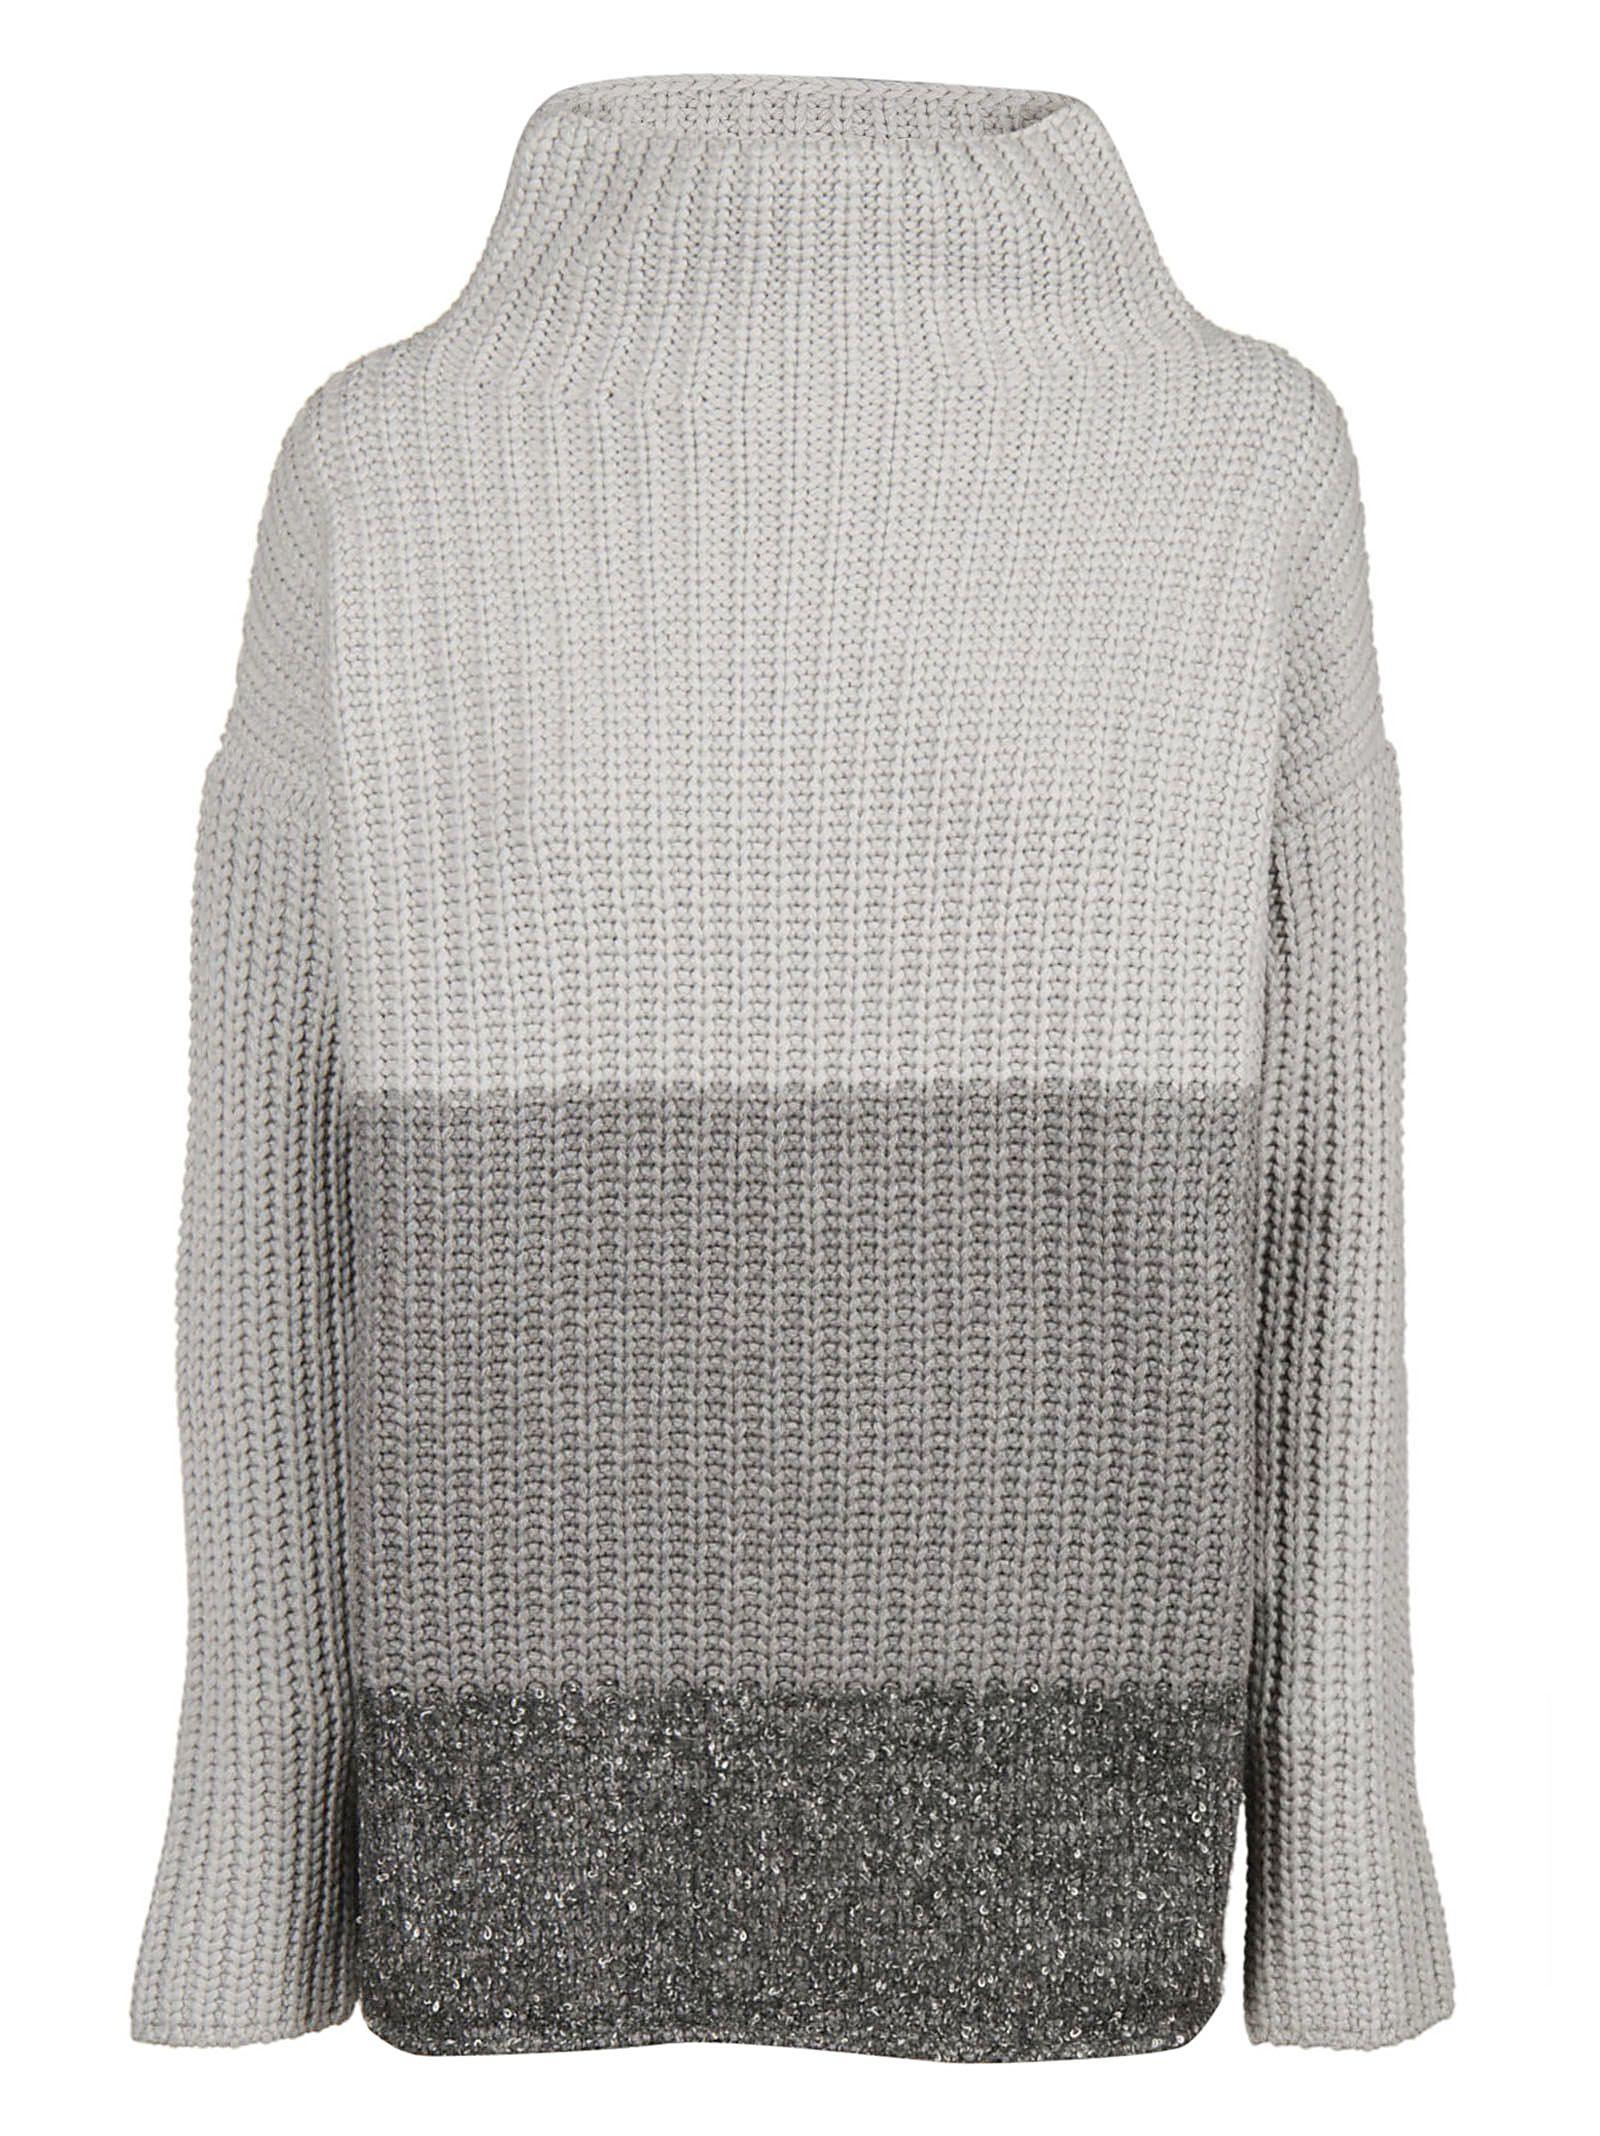 Fabiana Filippi Gradient Ribbed Sweater In Grey